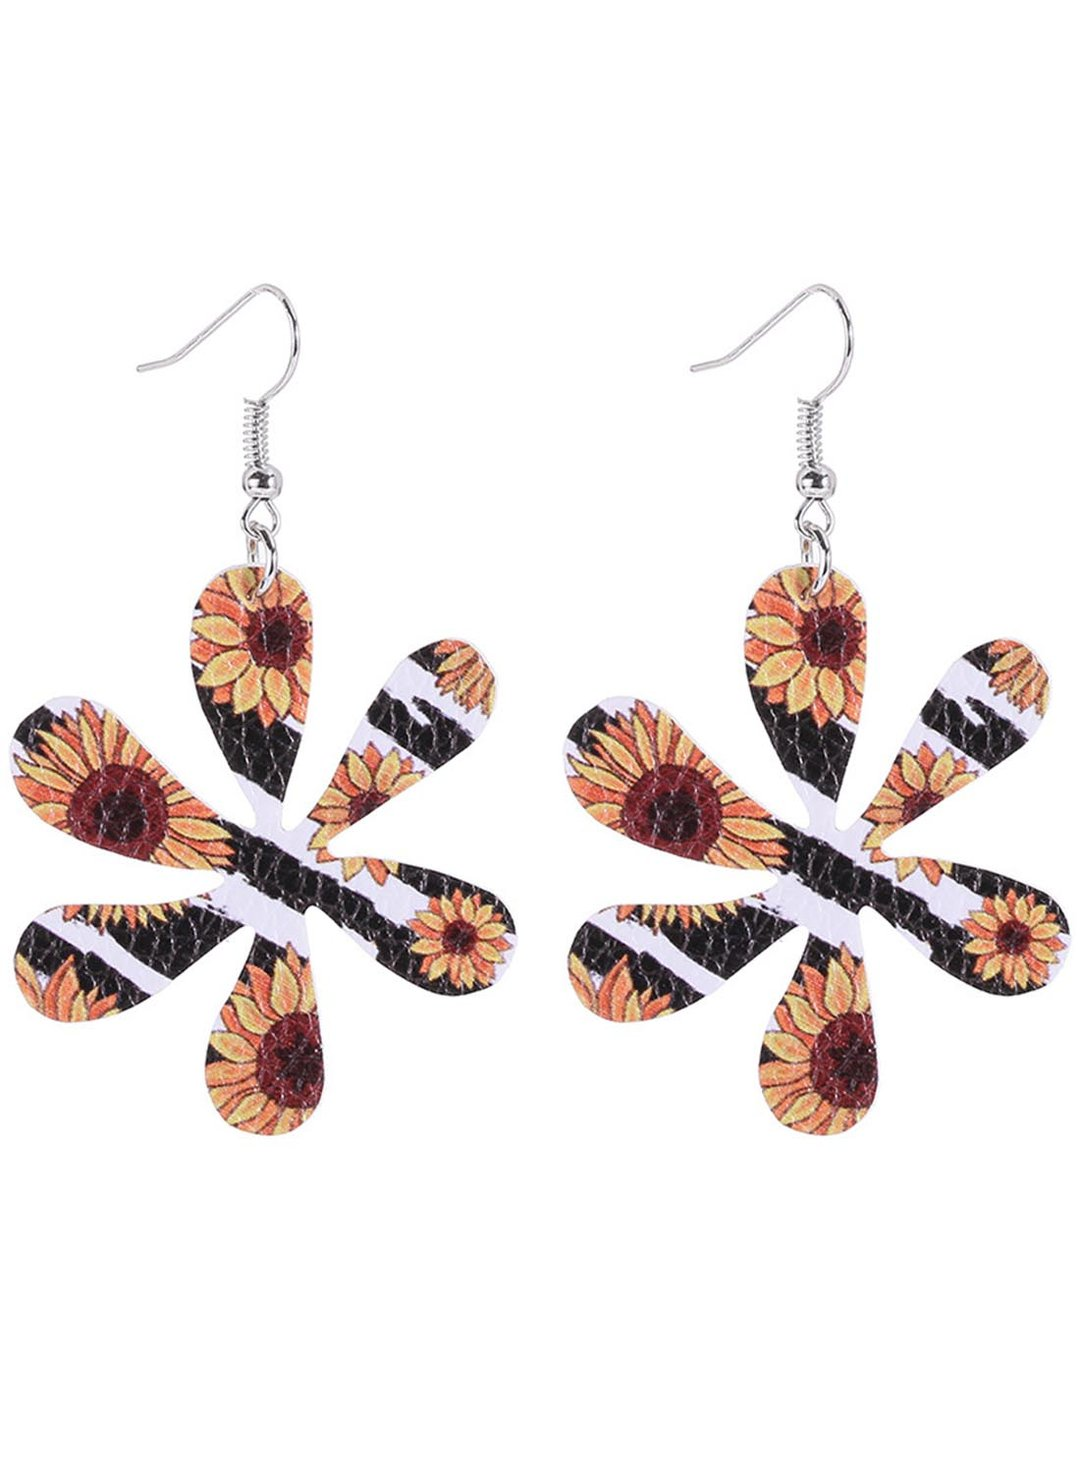 Stripe Women's Earrings Sunflower Chrysanthemum Flower Leather Earrings LC012439-19